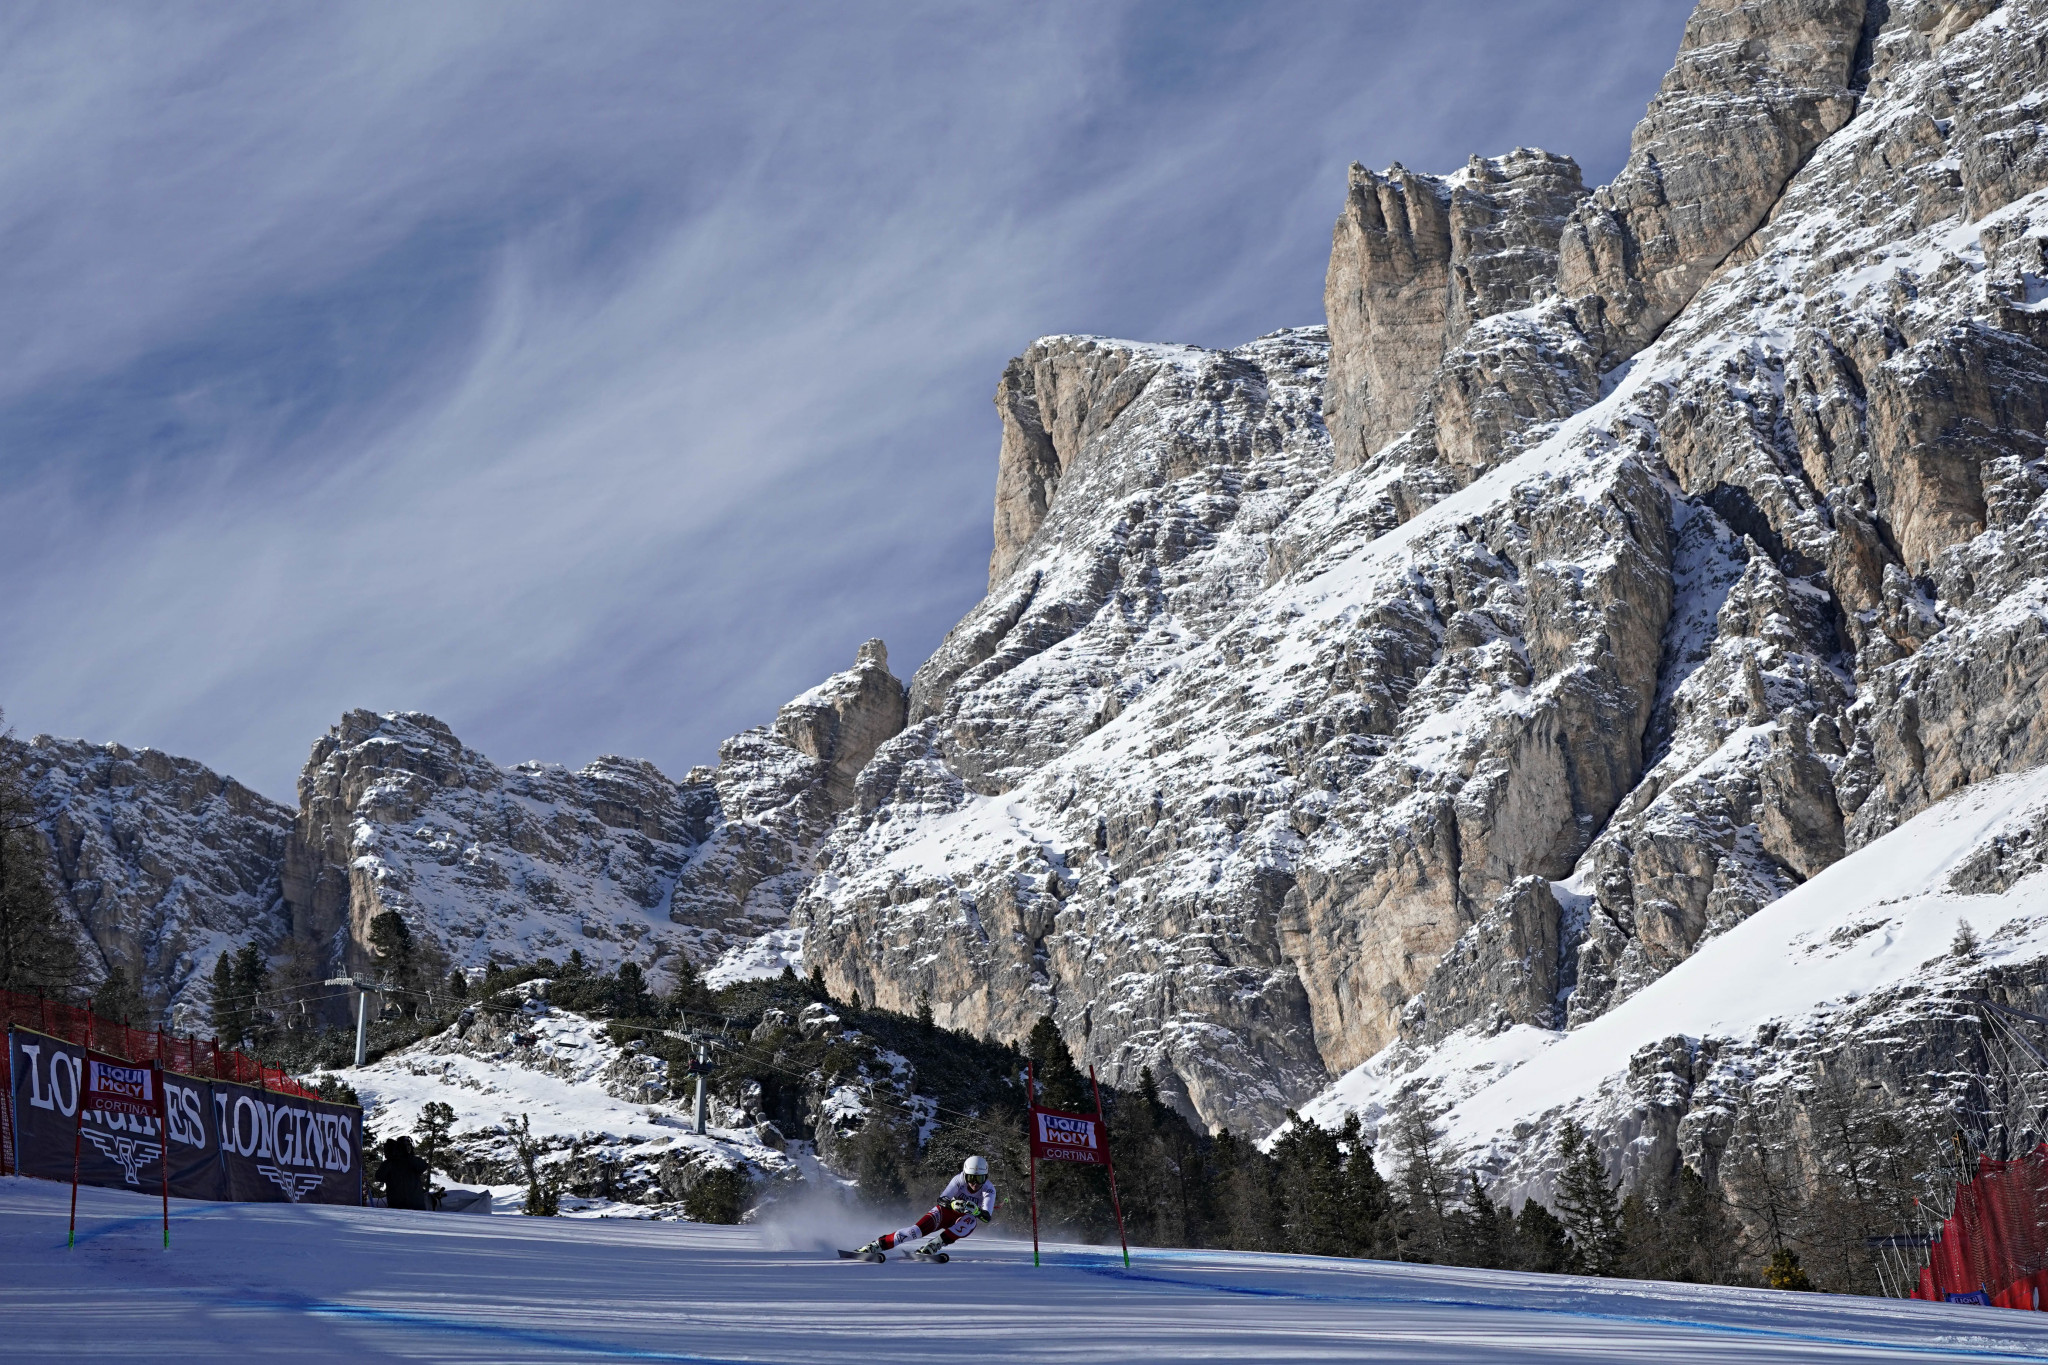 Cortina d'Ampezzo will host the next edition of the FIS Alpine World Ski Championships in two years' time ©Getty Images